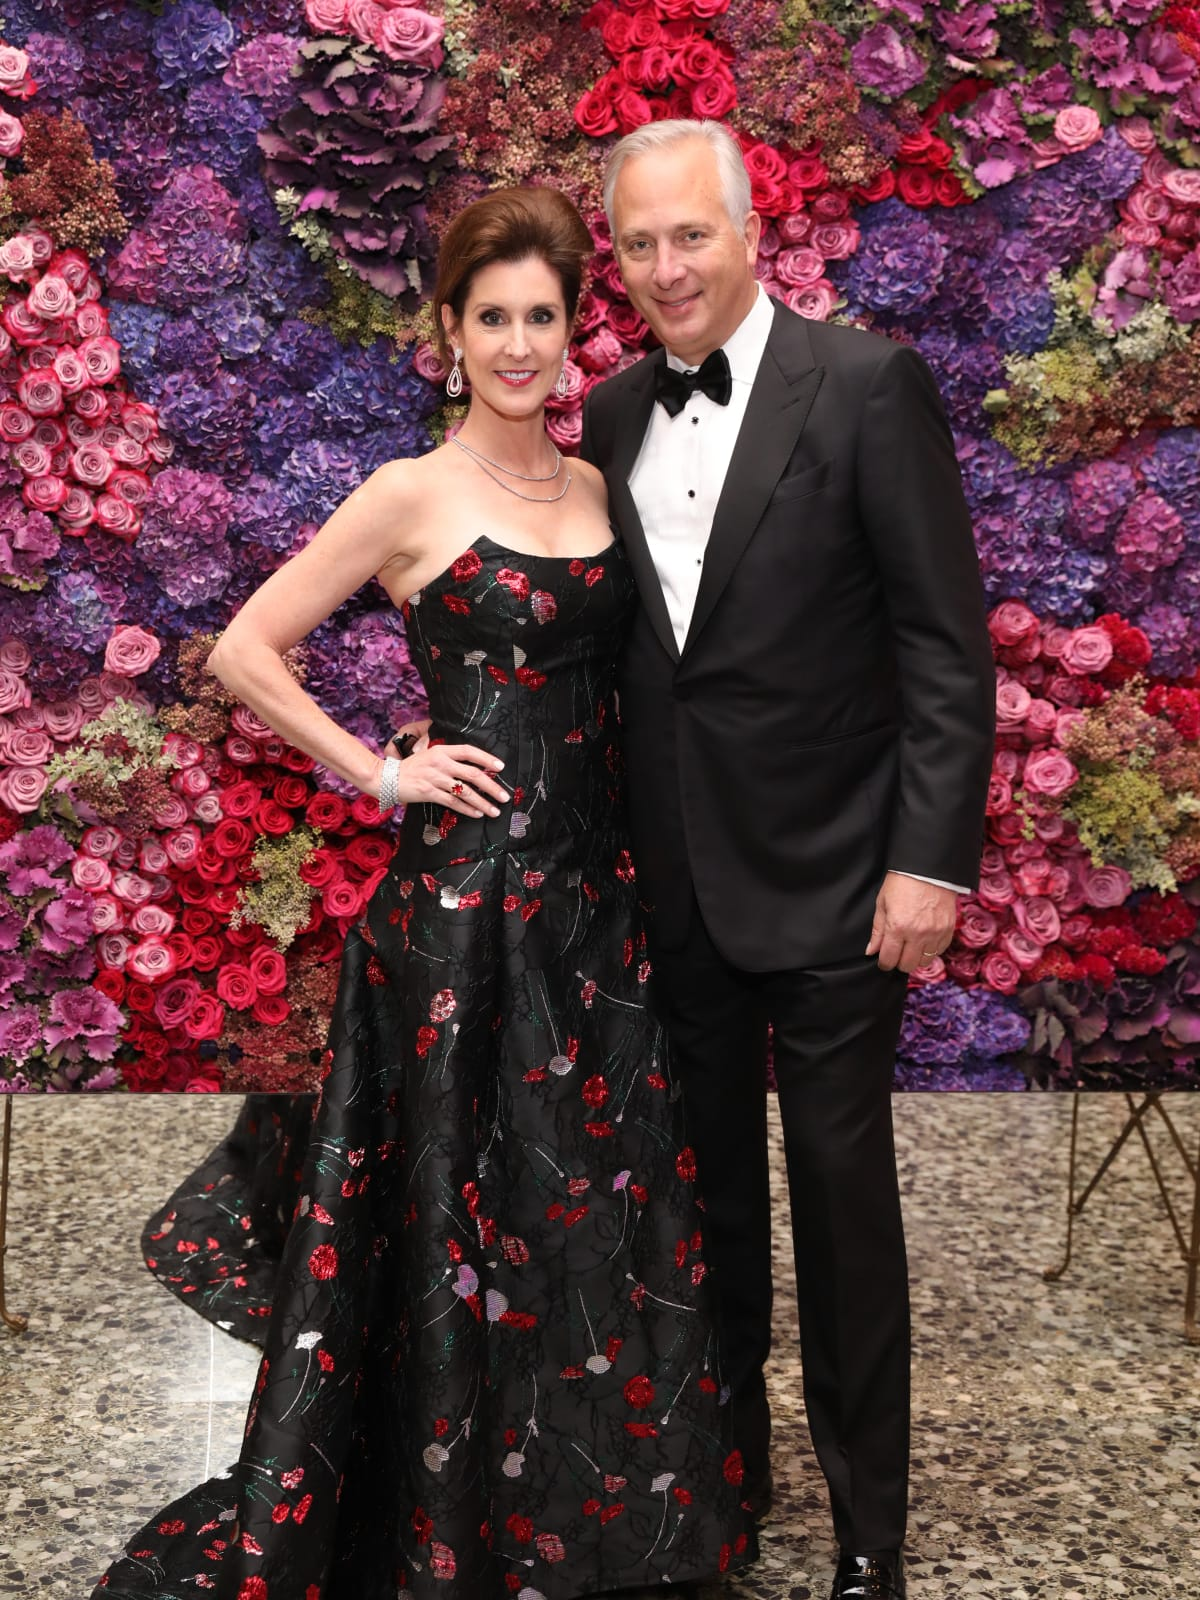 Phoebe and Bobby Tudor at MFAH Grand Gala Ball